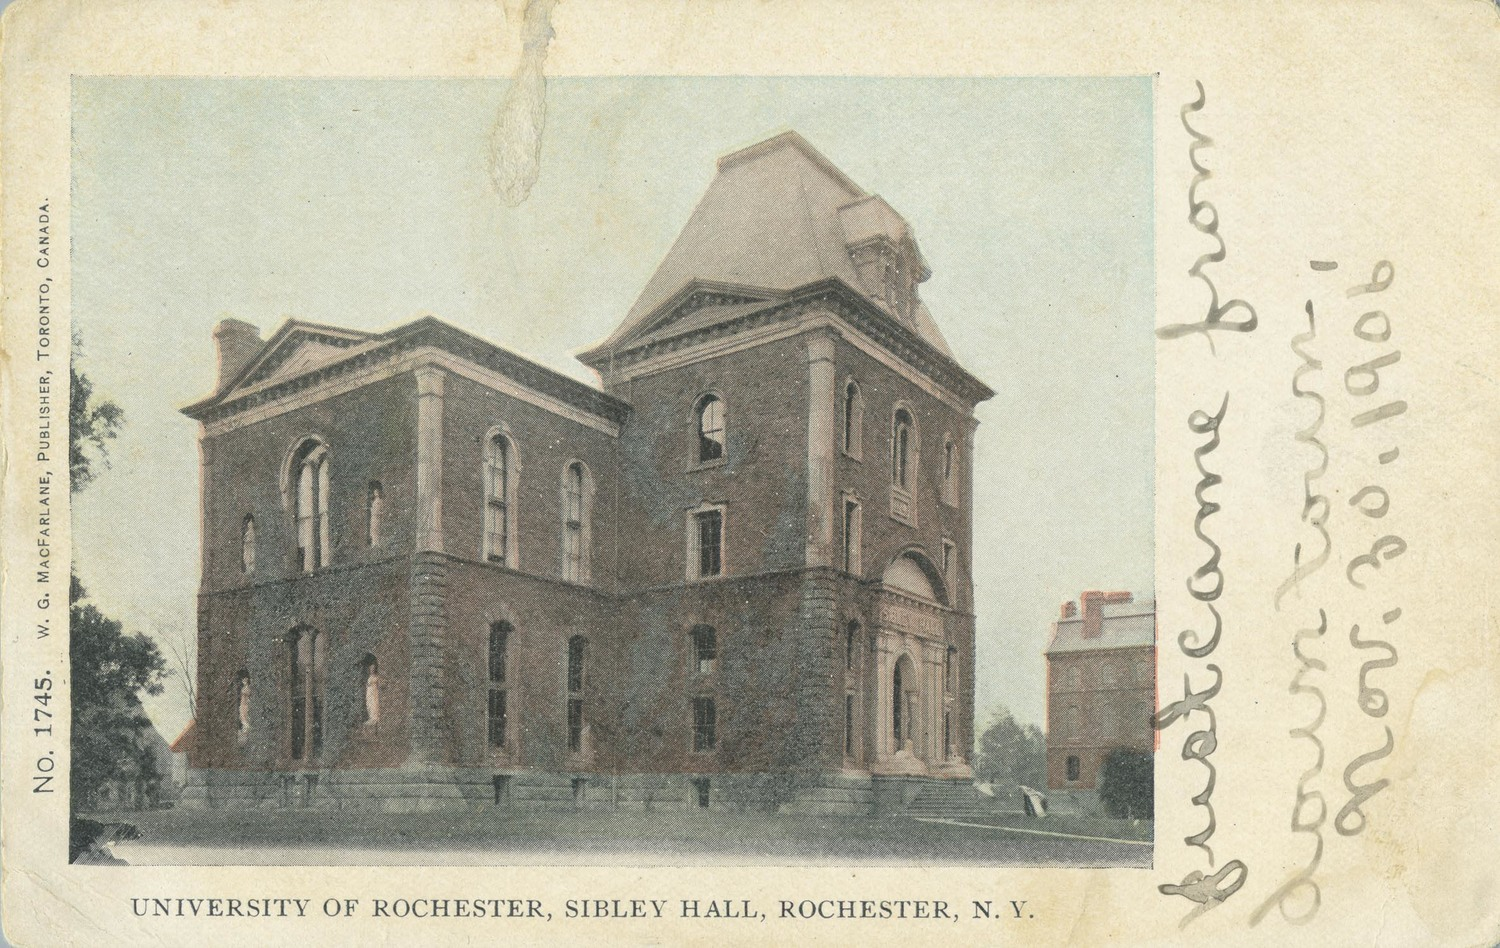 University of Rochester. Sibley Hall, Rochester, N.Y.